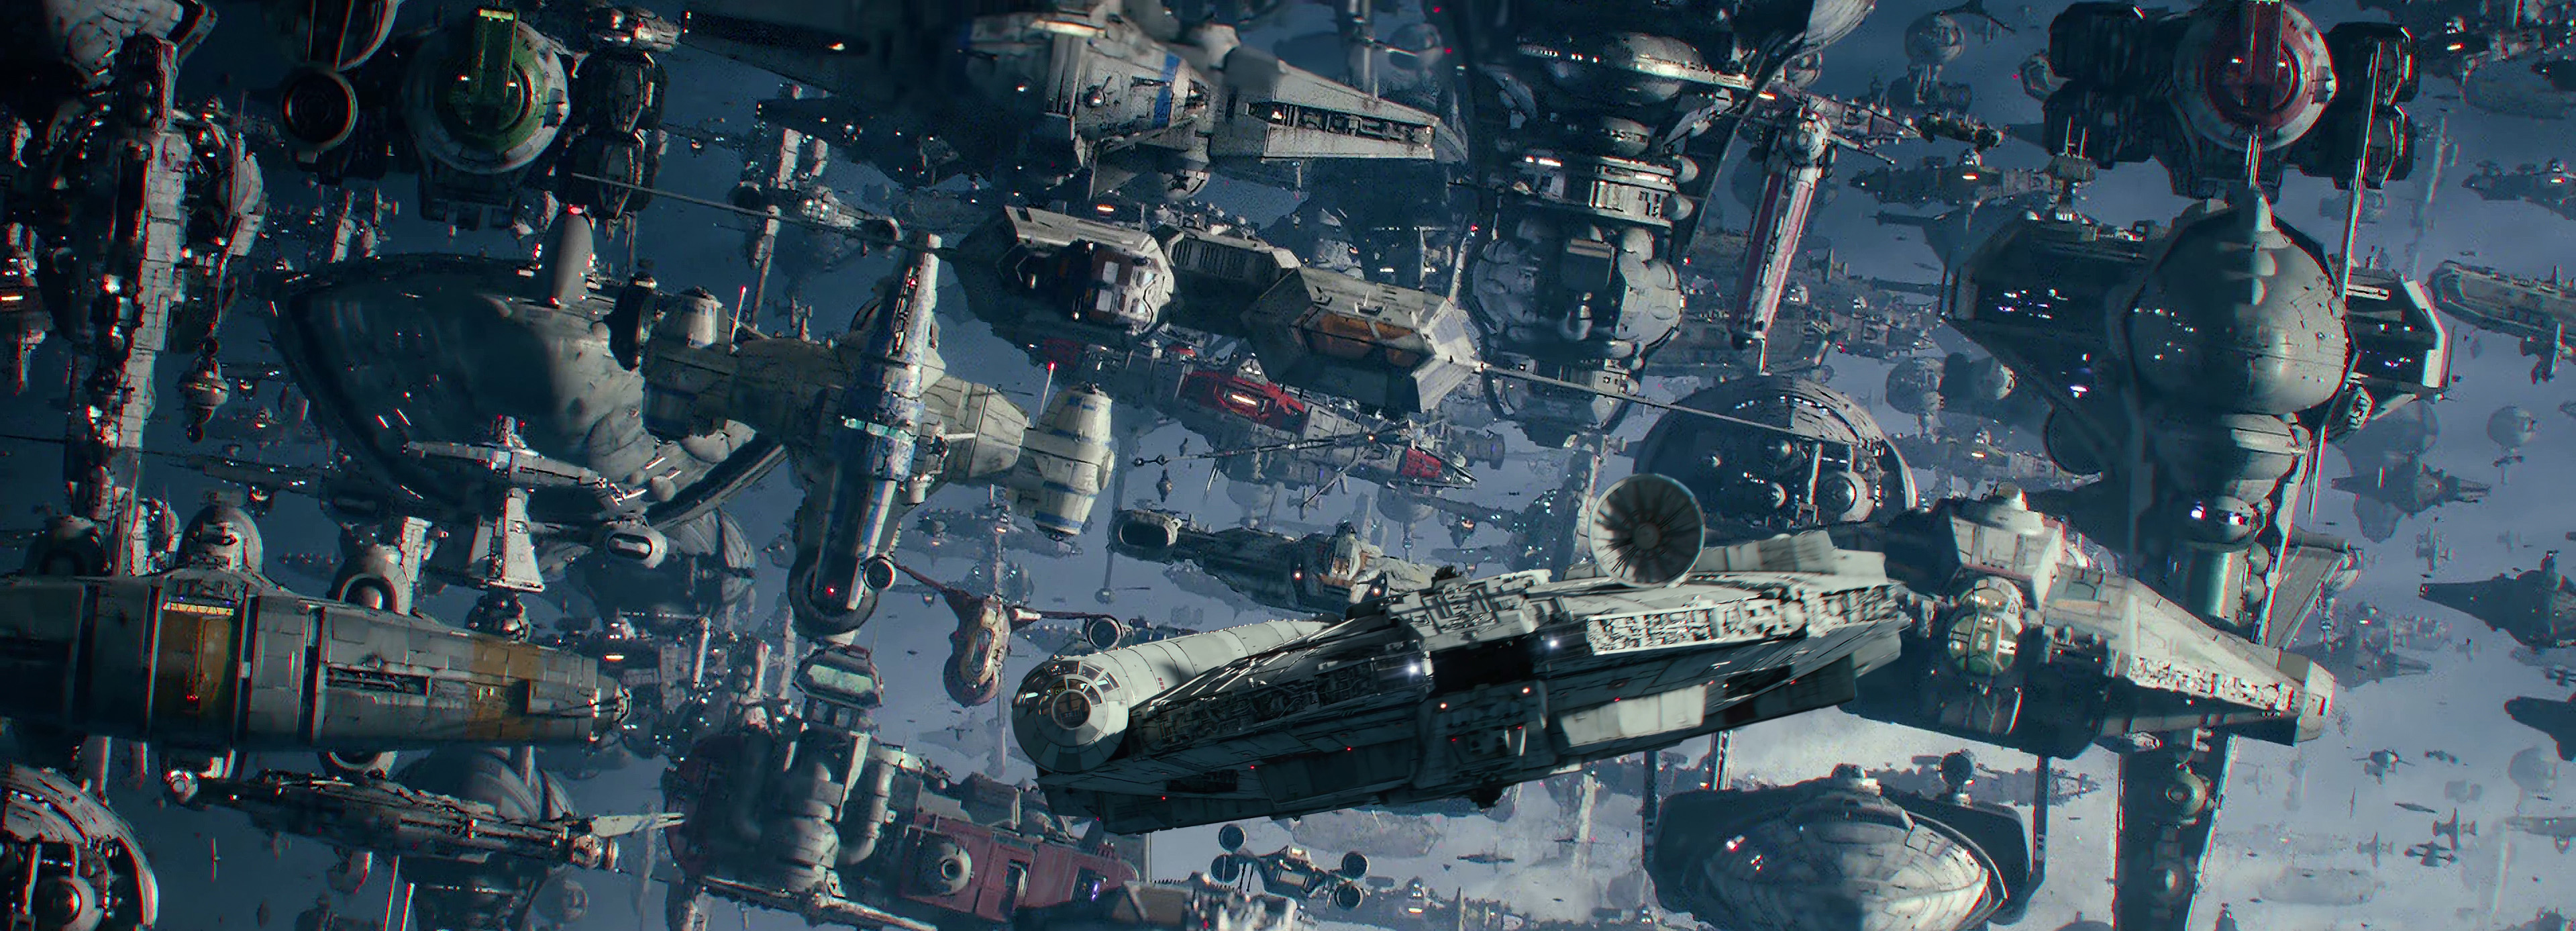 the-resistance-space-armada-and-the-millennium-falcon-star-wars-the-rise-of-skywalker